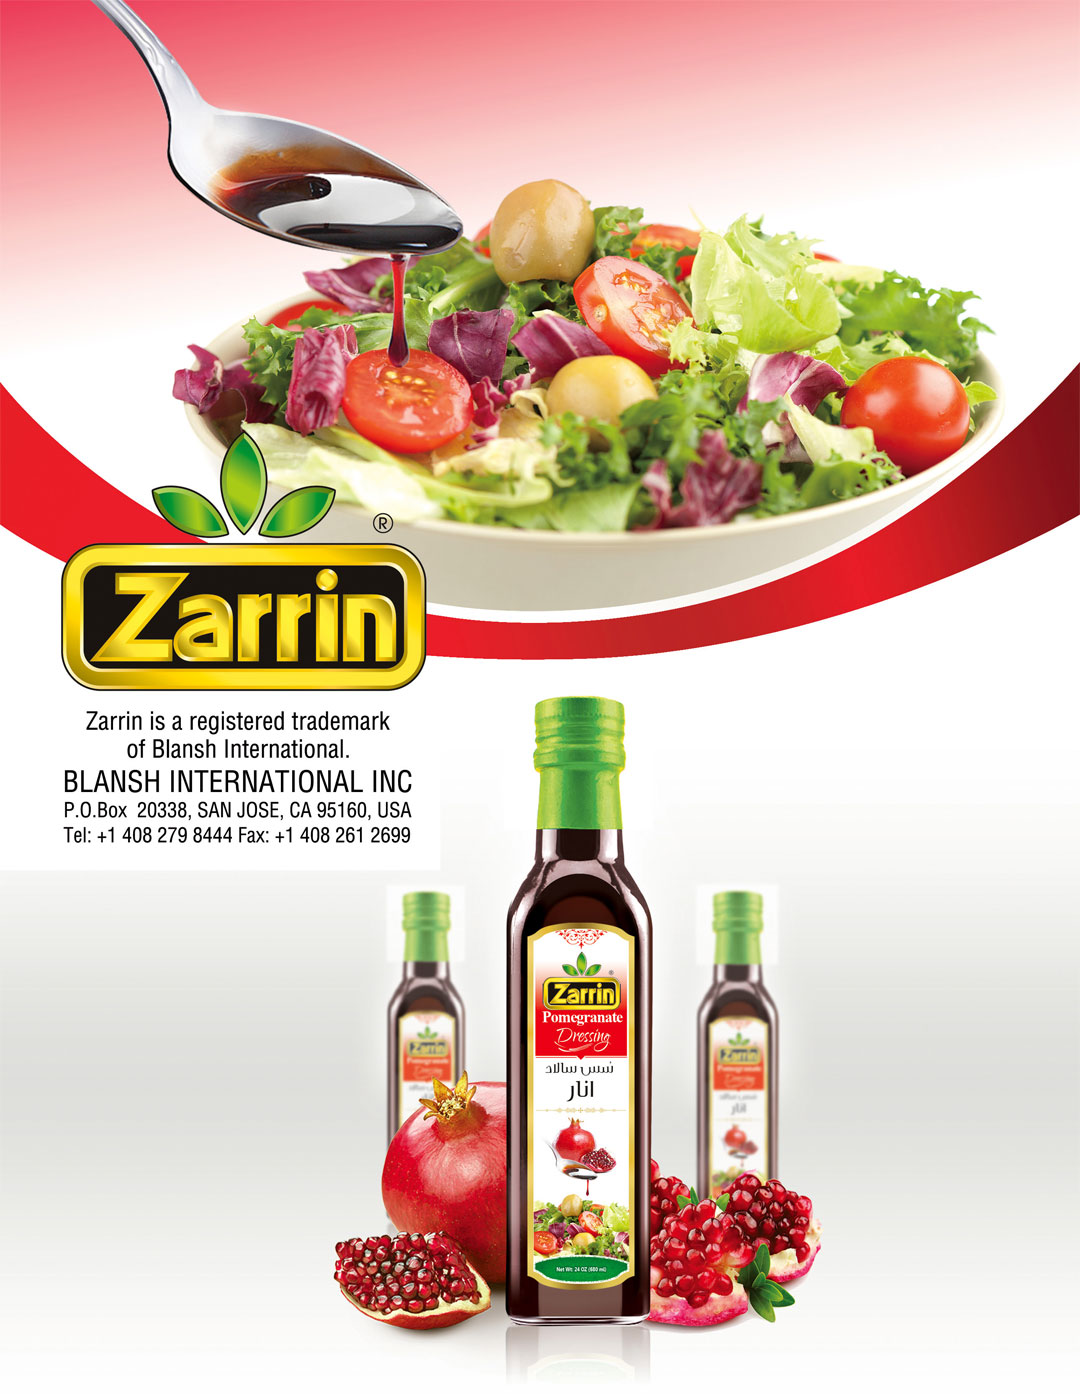 Zarrin is a middle eastern food wholesale with products such as pomegranate molasses.